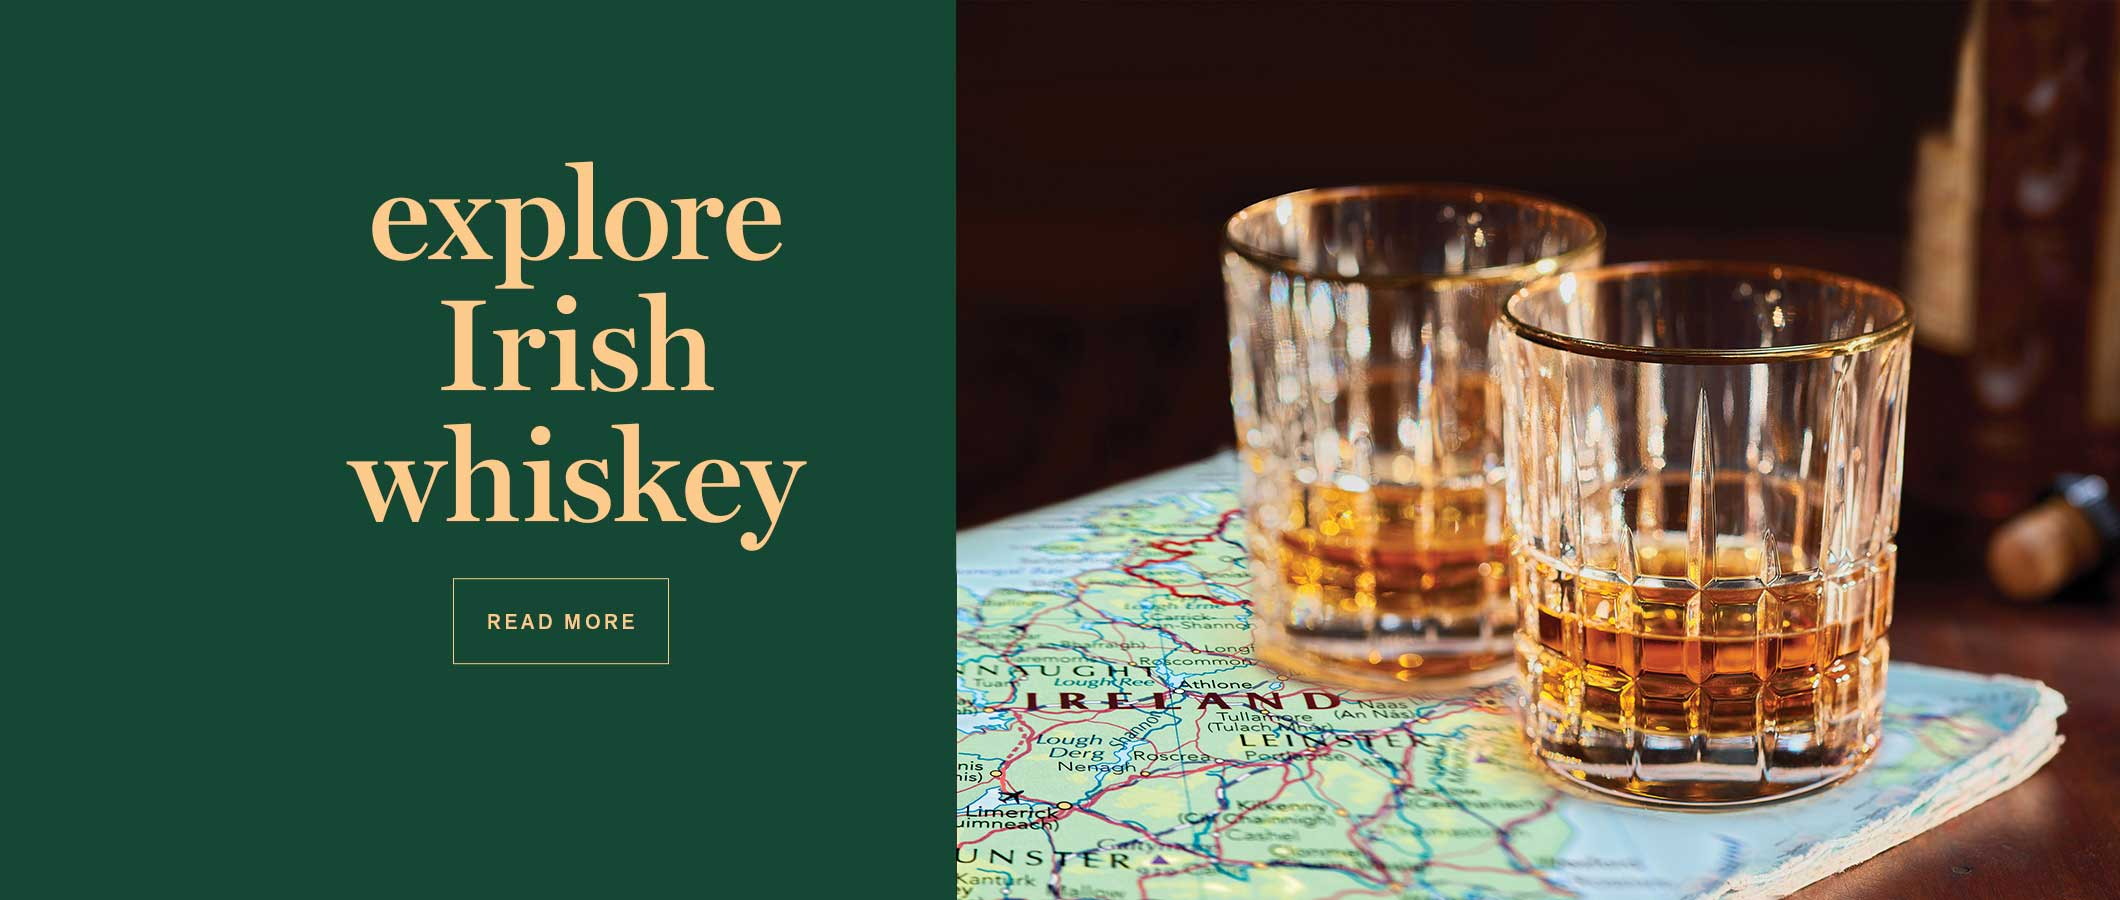 Explore Irish Whiskey. READ MORE